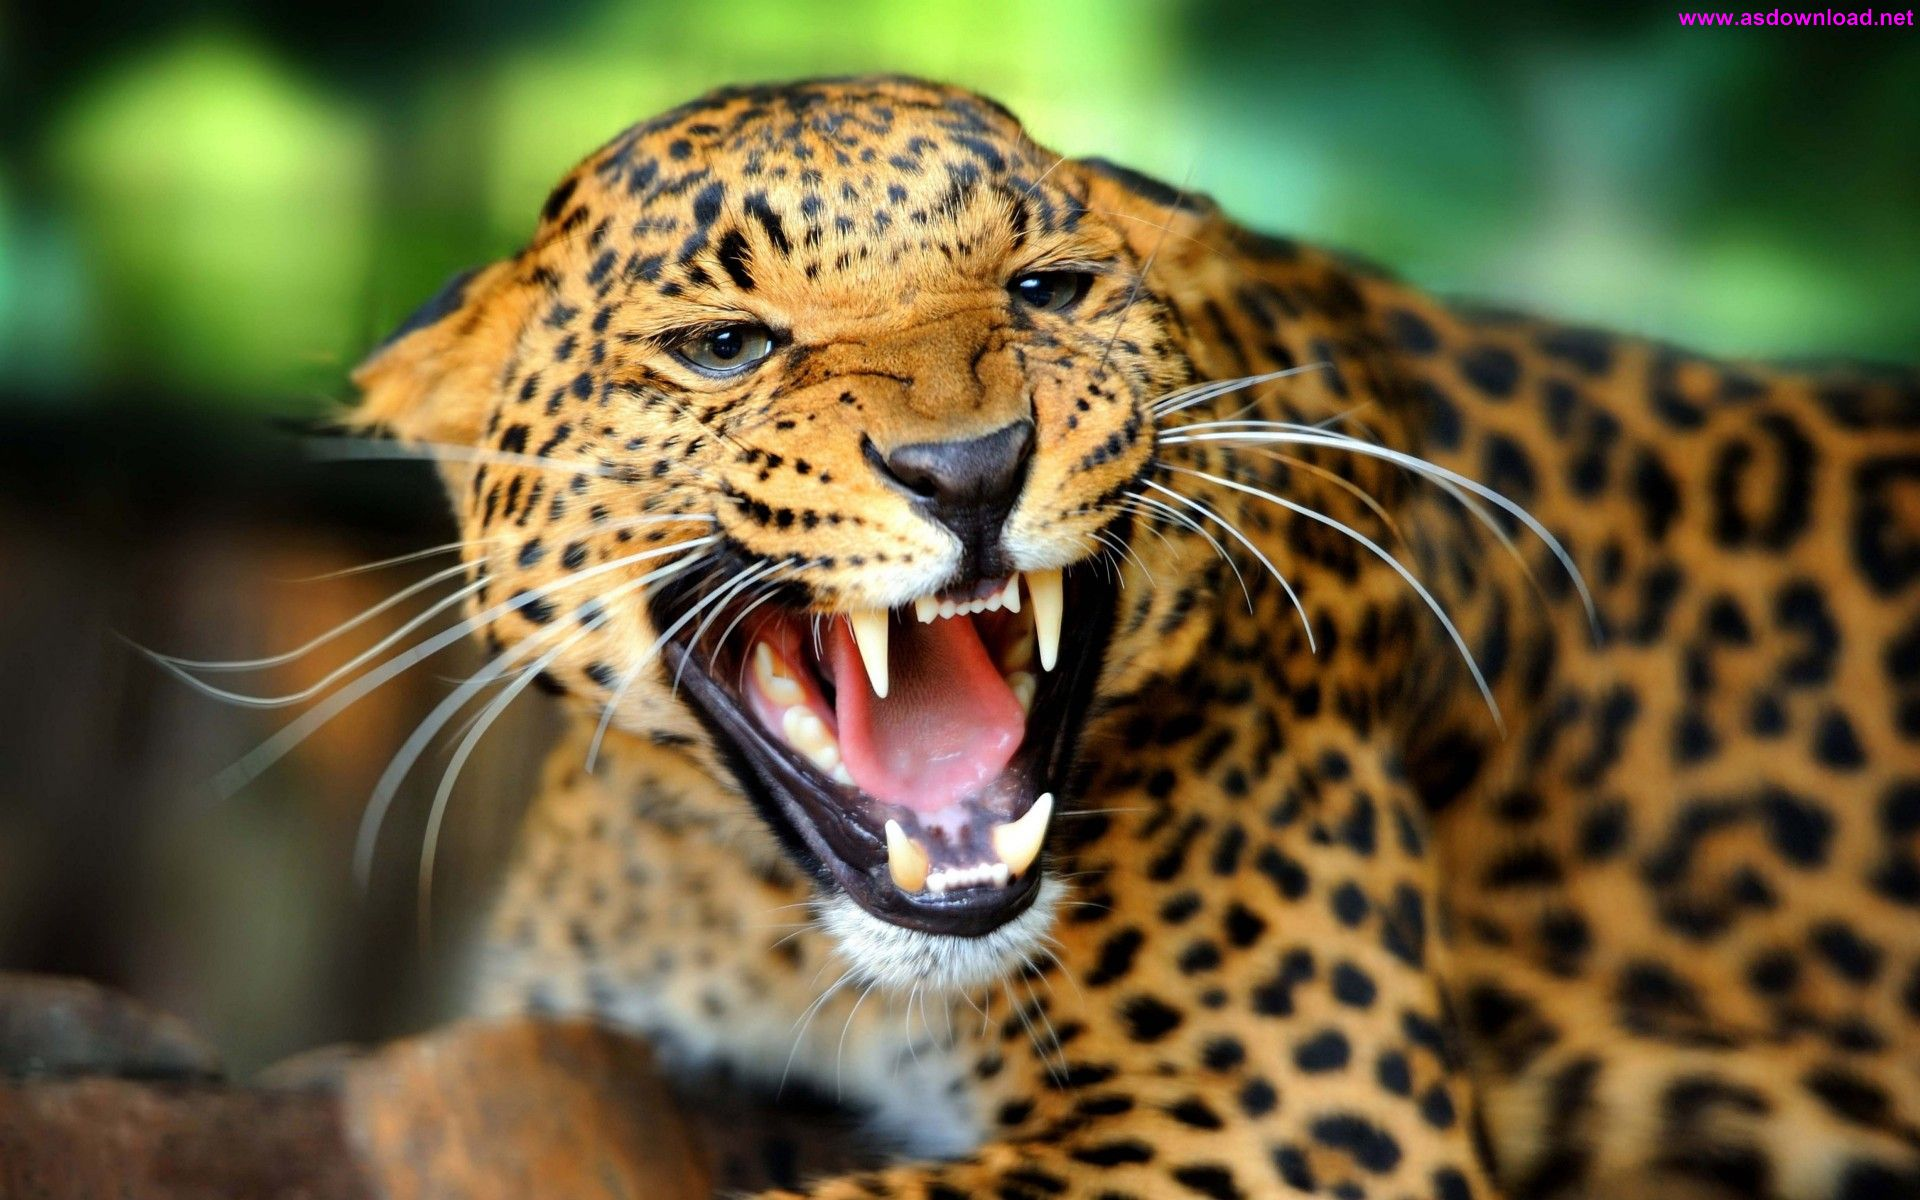 Leopard Wild Cat Growl Close Up Wallpaper دانلود والپیپر جدید 2015